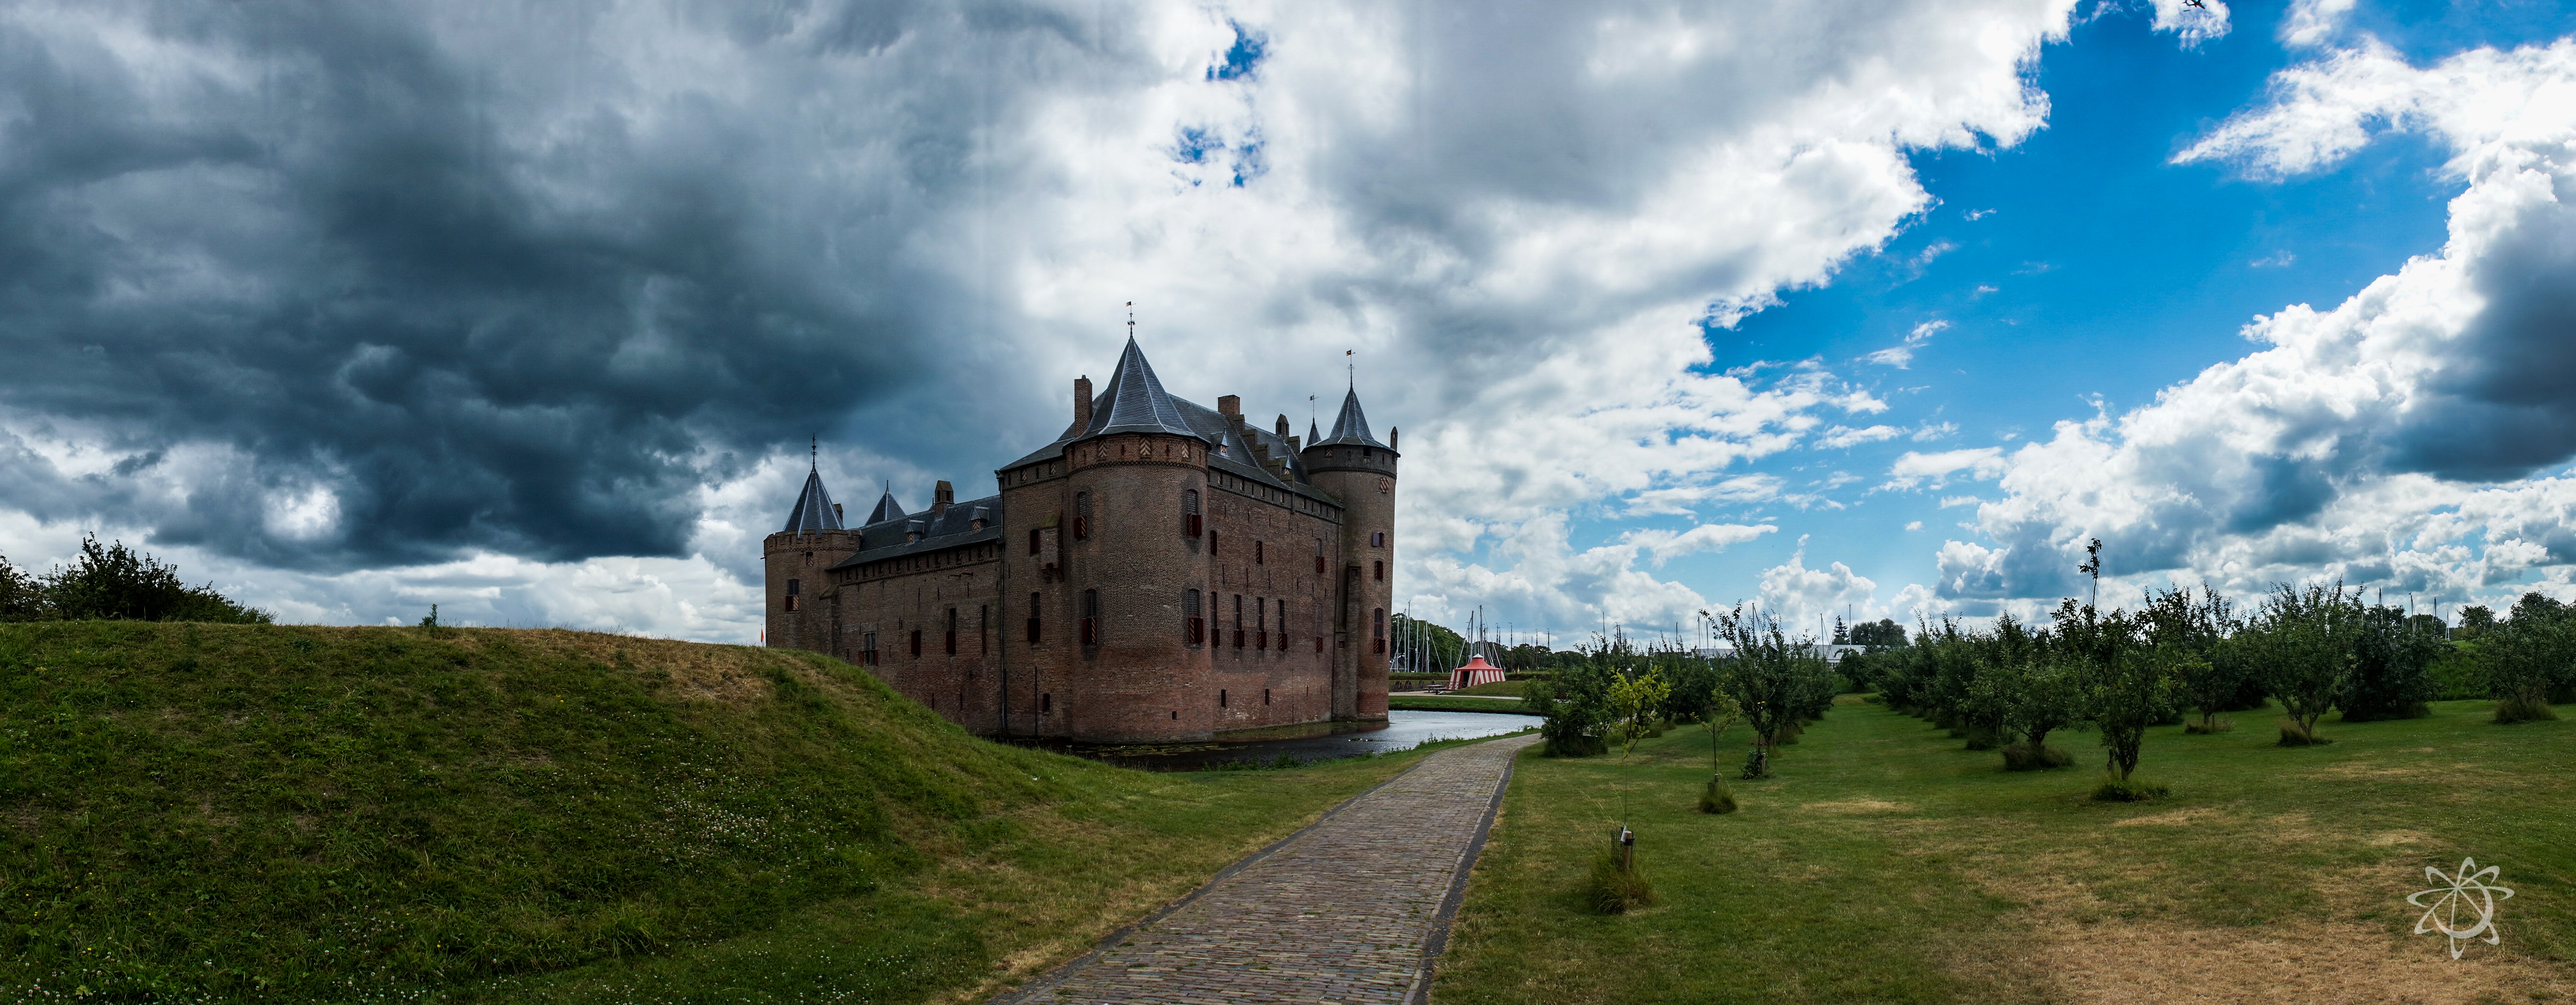 There are about 50 different castles along the defense perimeter, I went to only one but that was because i didn't know there was a large outer ring. It was really neat to see the Muiderslot castle and I learned a lot about its history in the process. Definitely a cool site to see =)